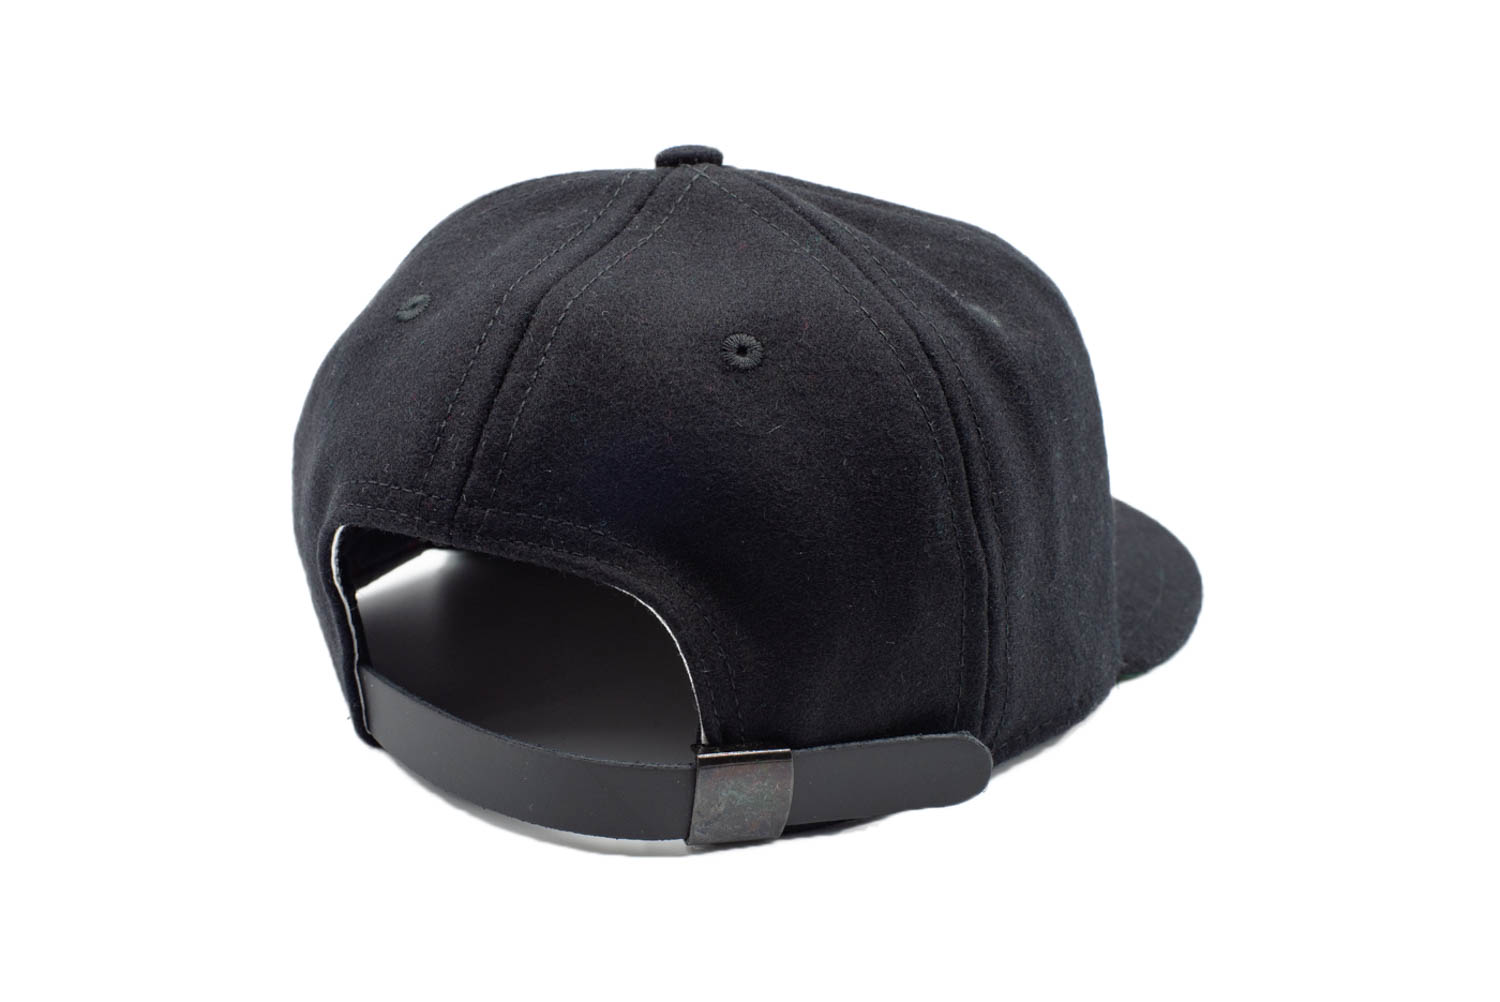 Infinite Companion Ballcap